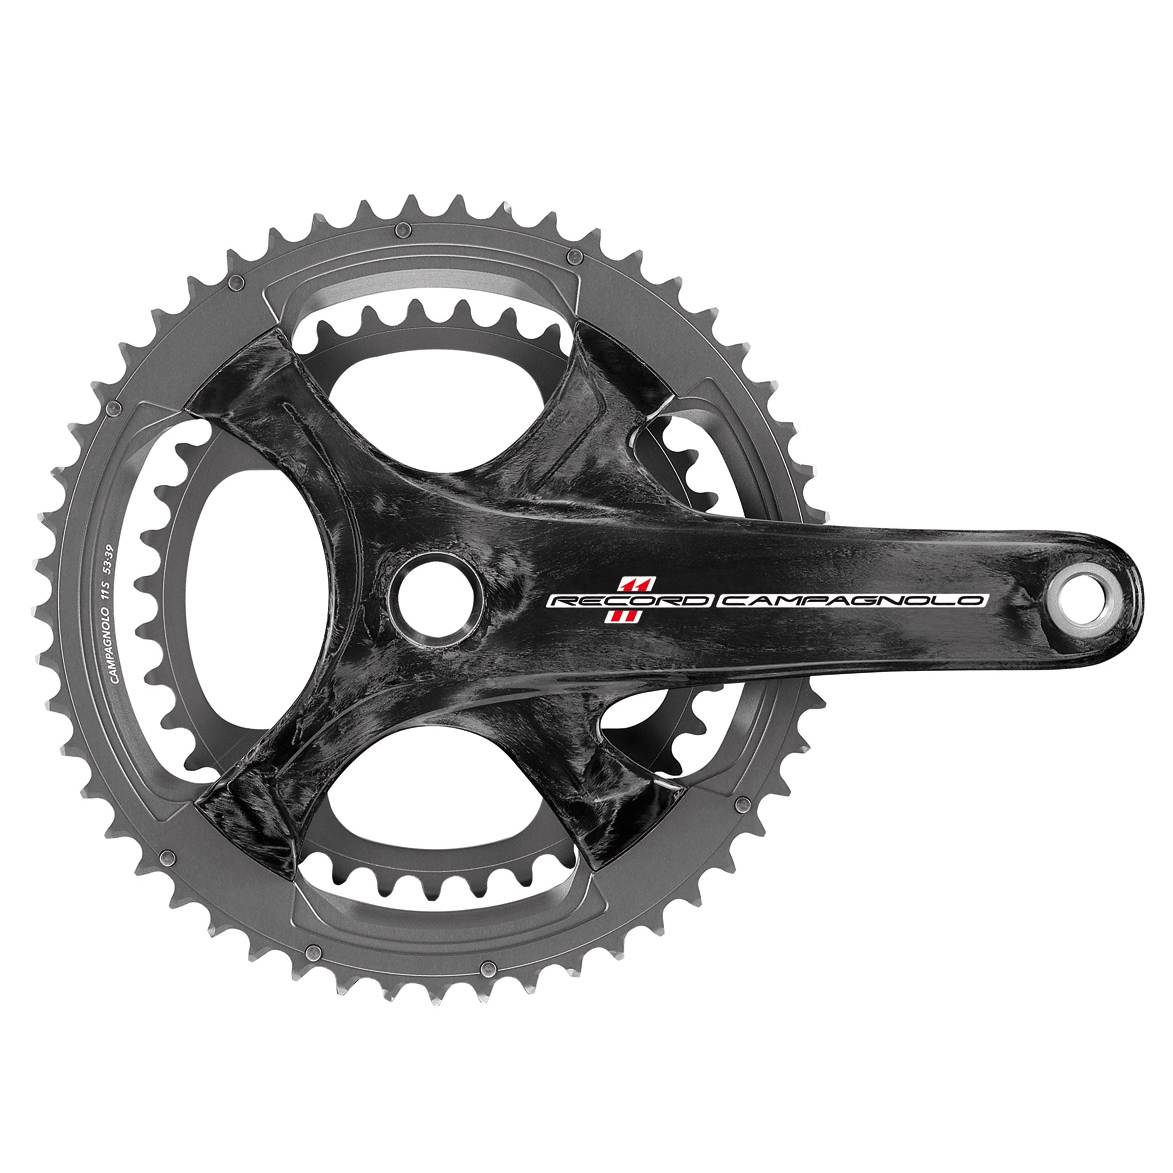 Campagnolo Record Ultra Torque CT Carbon Chainset - 11 Speed